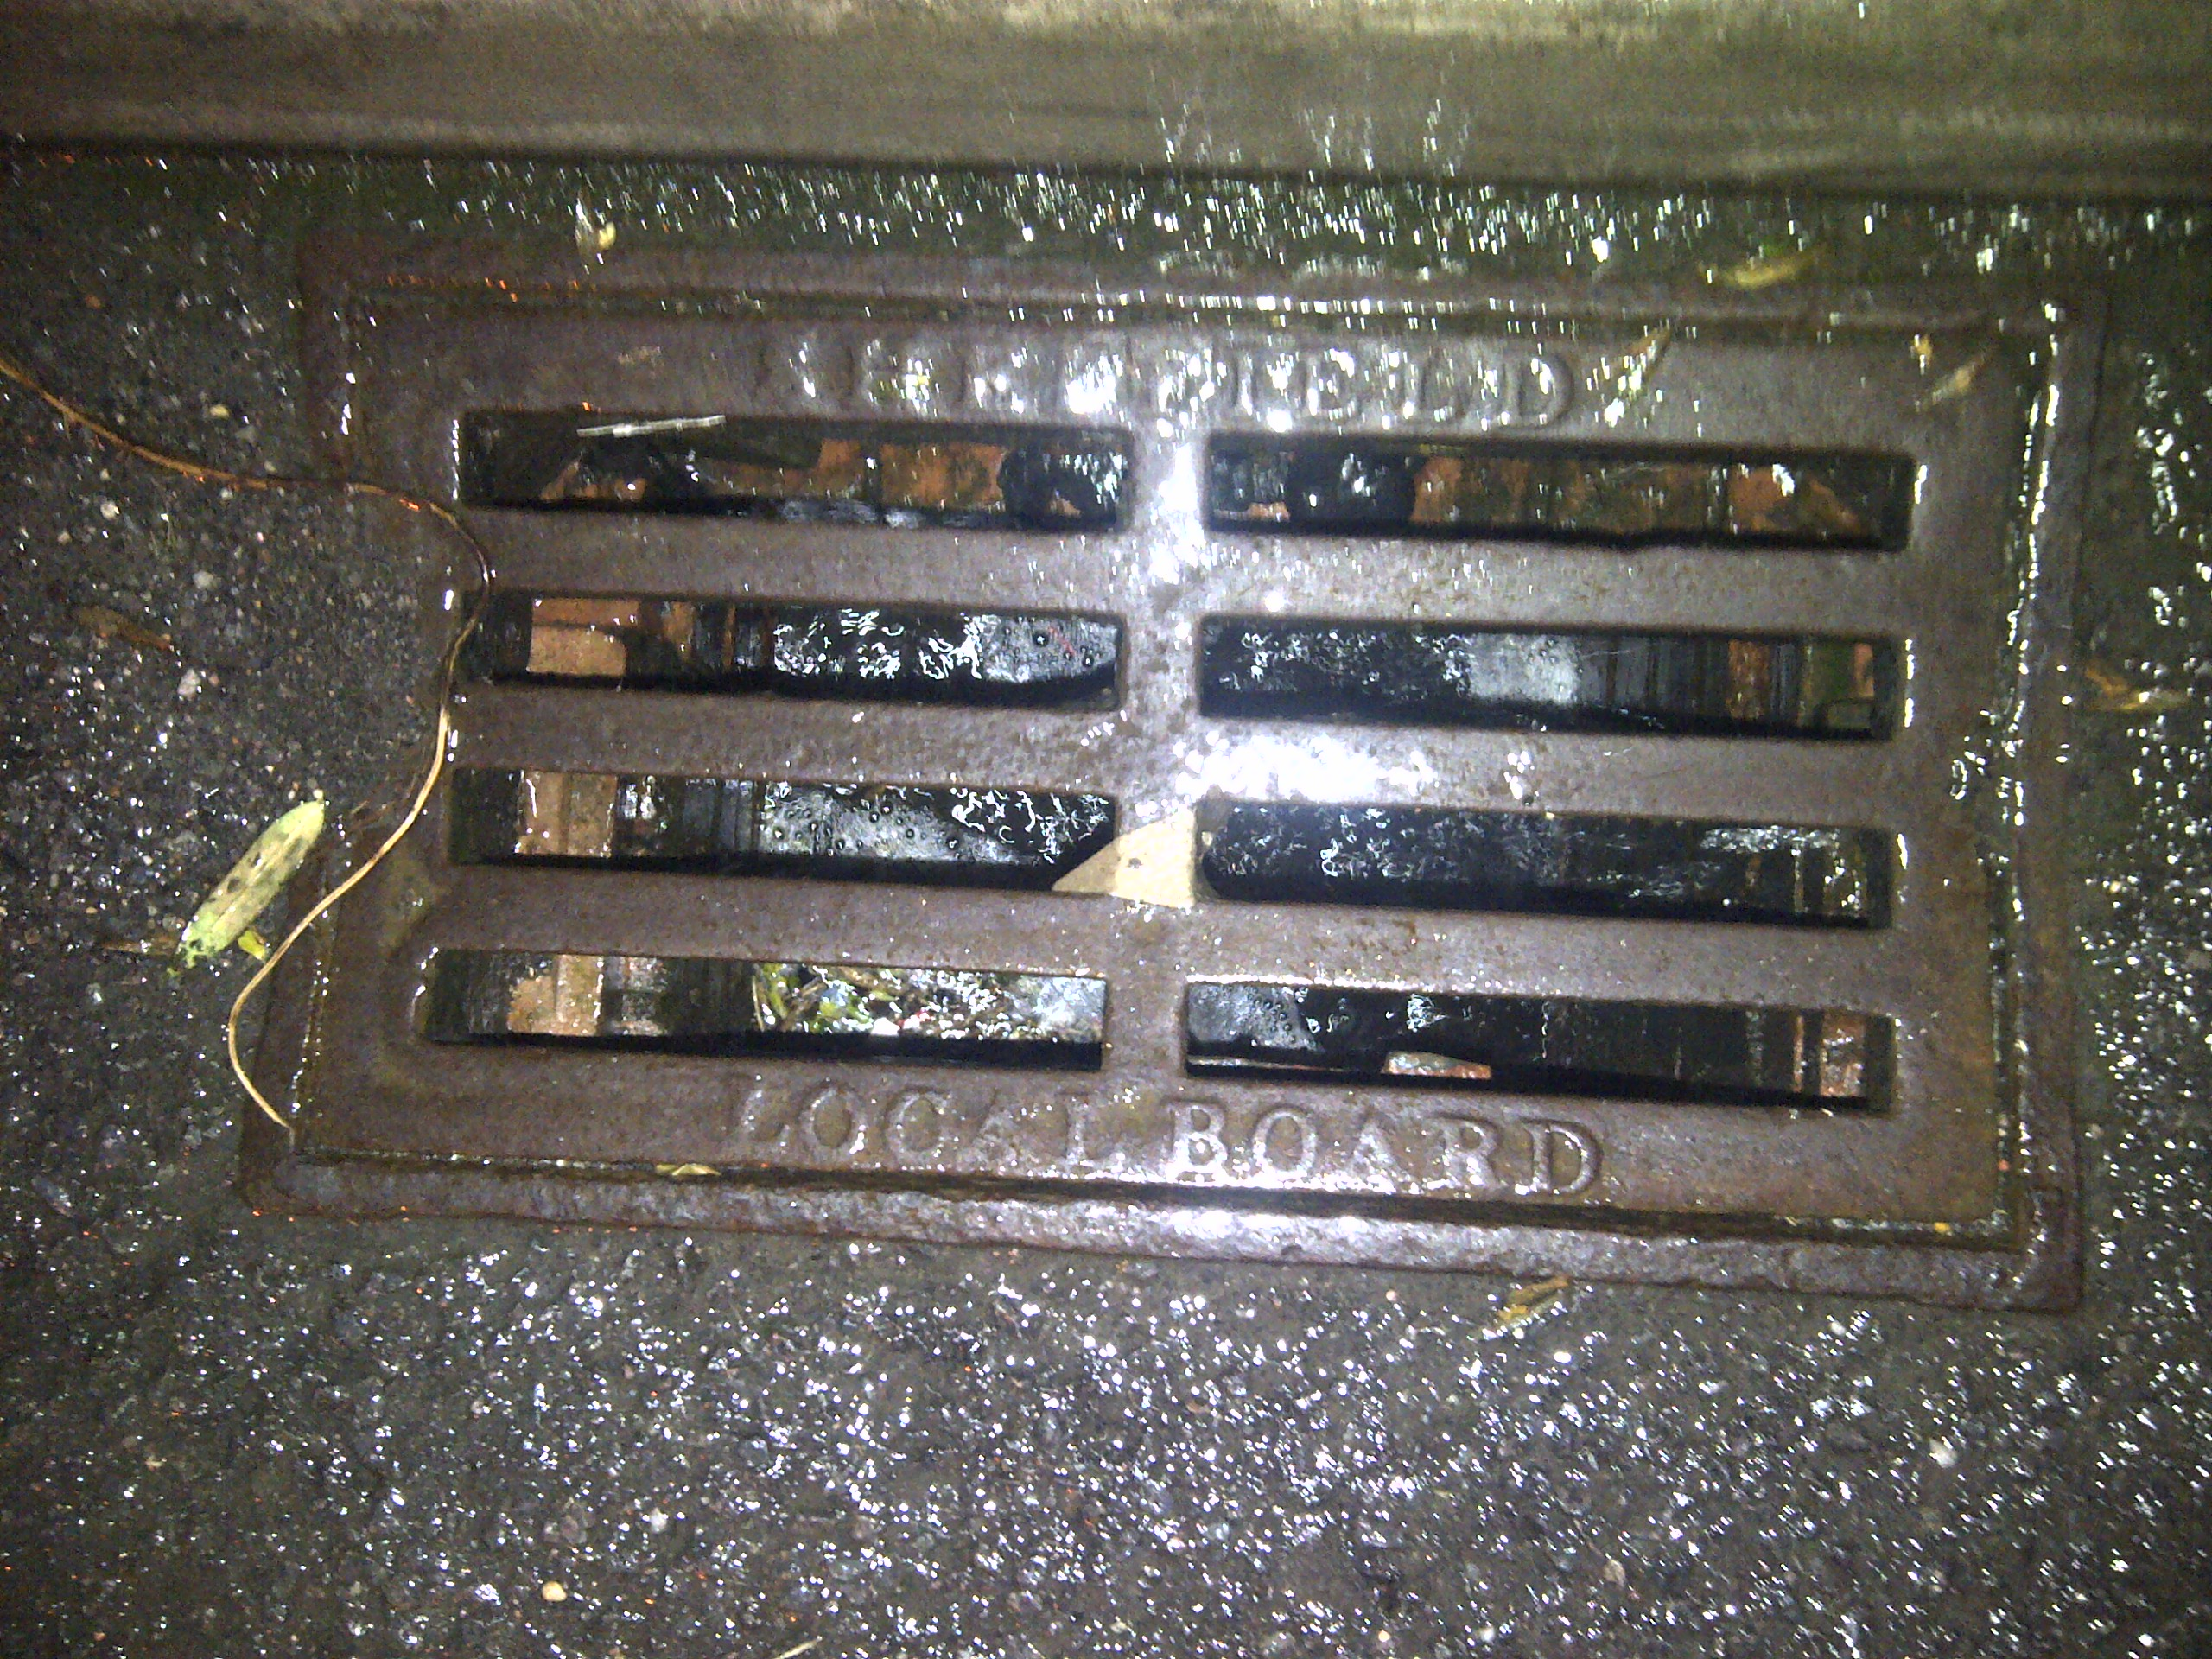 This drain cpover carries the legend 'SHEFFIELD LOCAL BOARD' which apparenty referrs to the Local Board of Health, an organisation set up in sheffield in the mid 1800s.